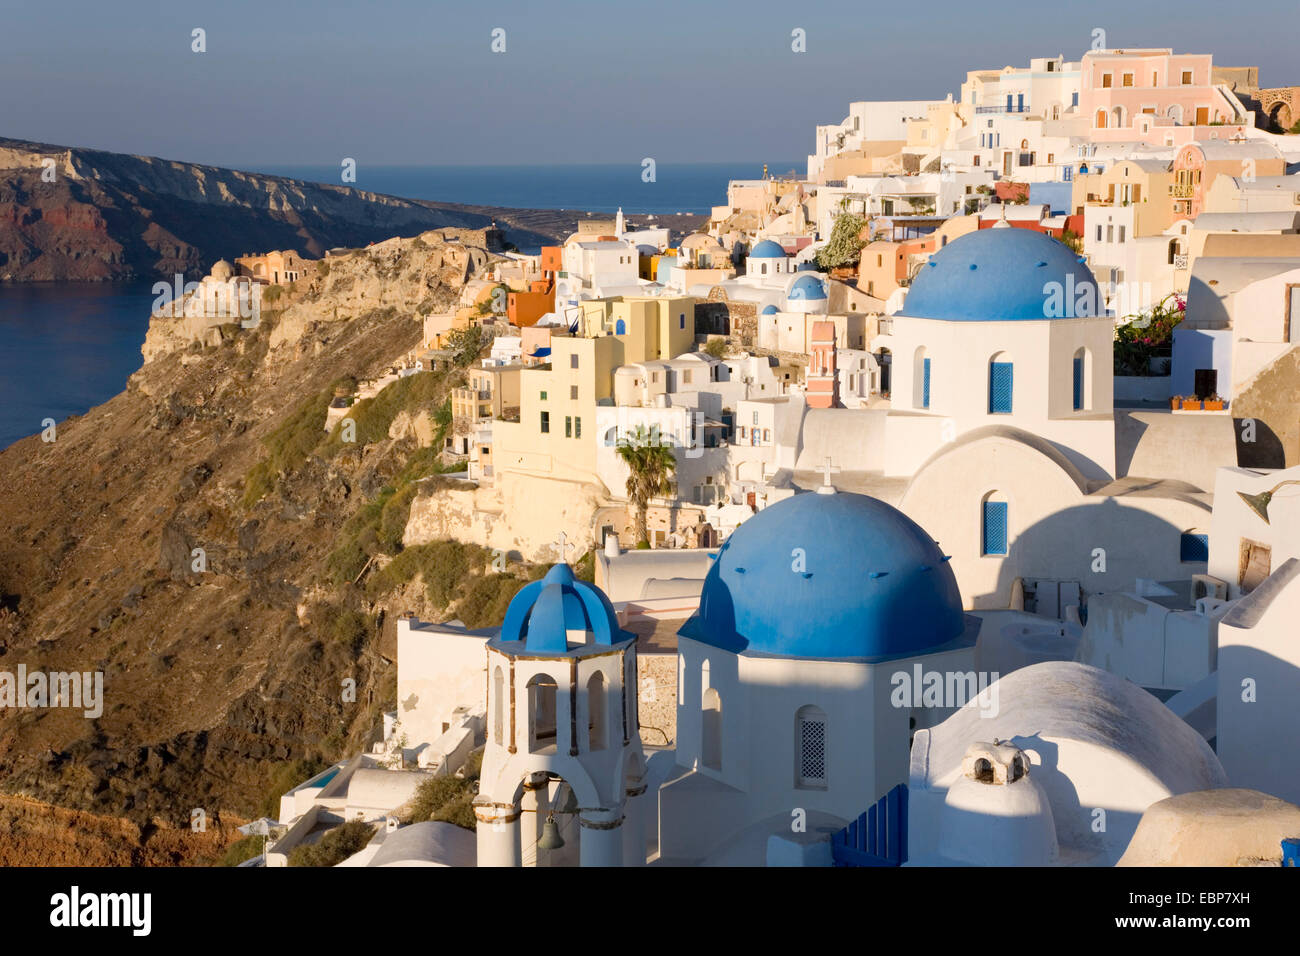 Ia, Santorini, South Aegean, Greece. The village at sunrise, typical blue-domed churches prominent. - Stock Image